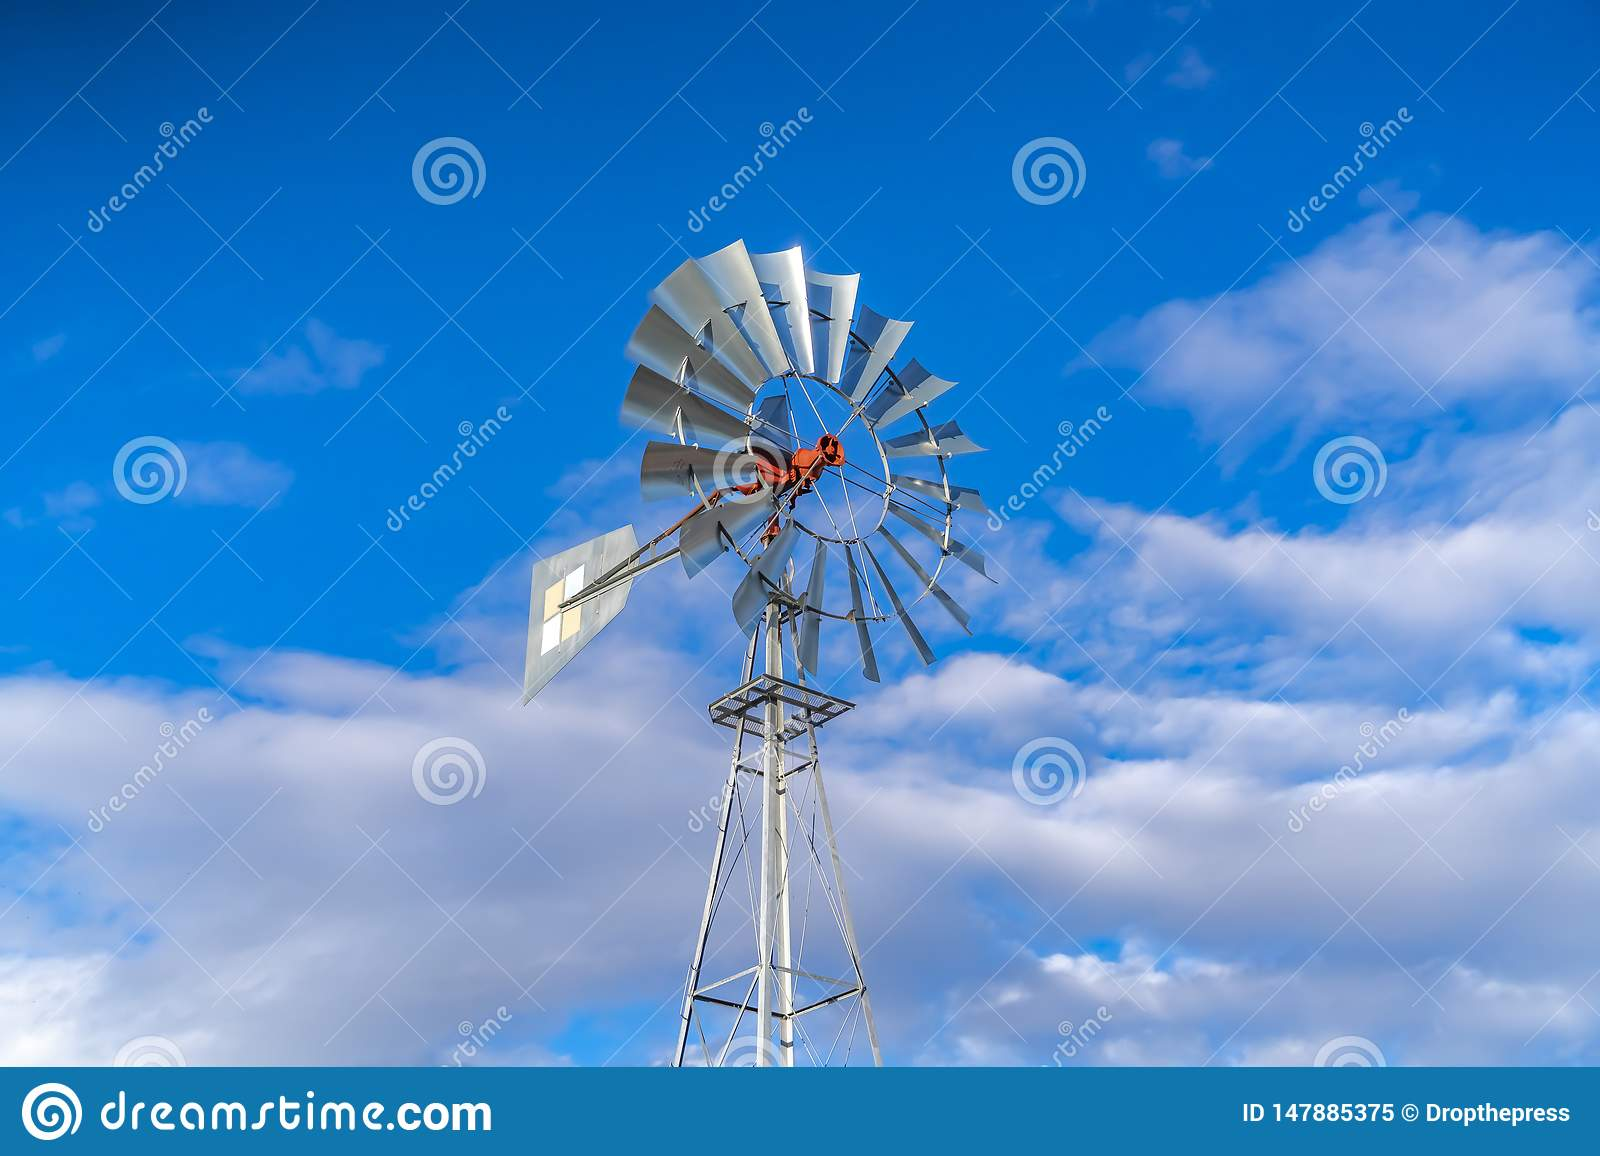 Shiny steel windpump against a vibrant blue sky with cottony clouds